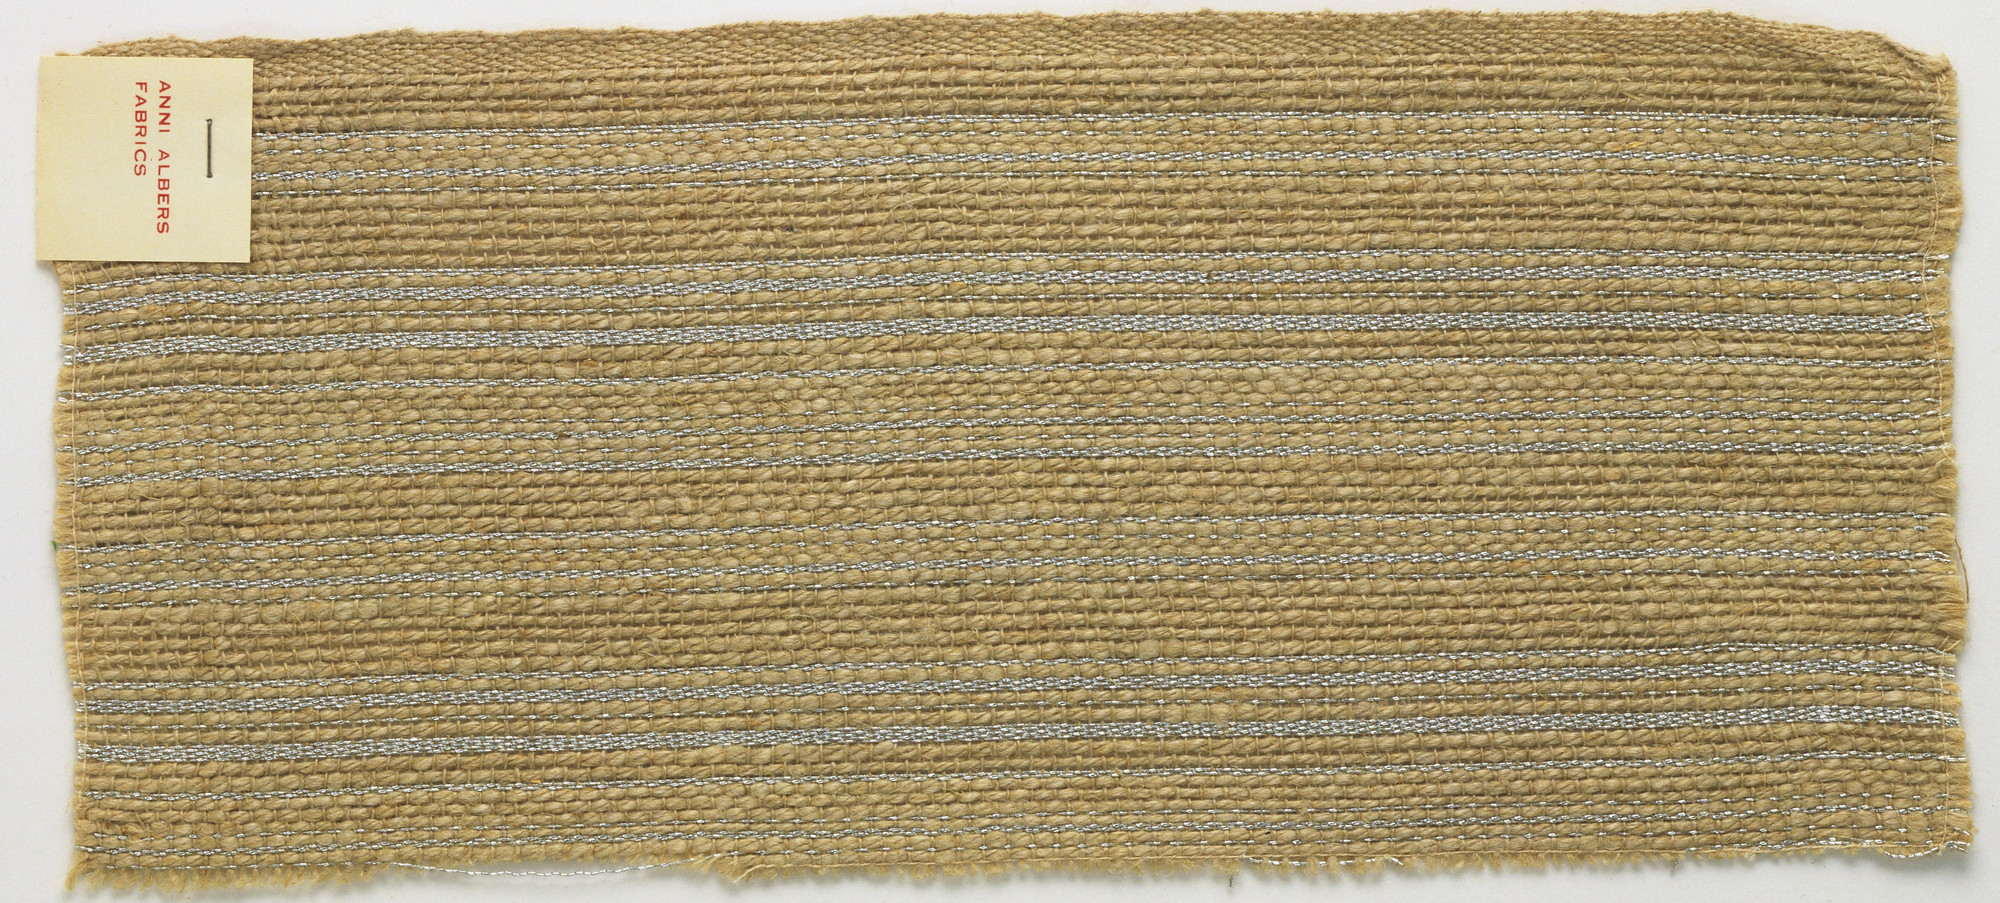 Anni Albers. Wall-Covering Material. c. 1950